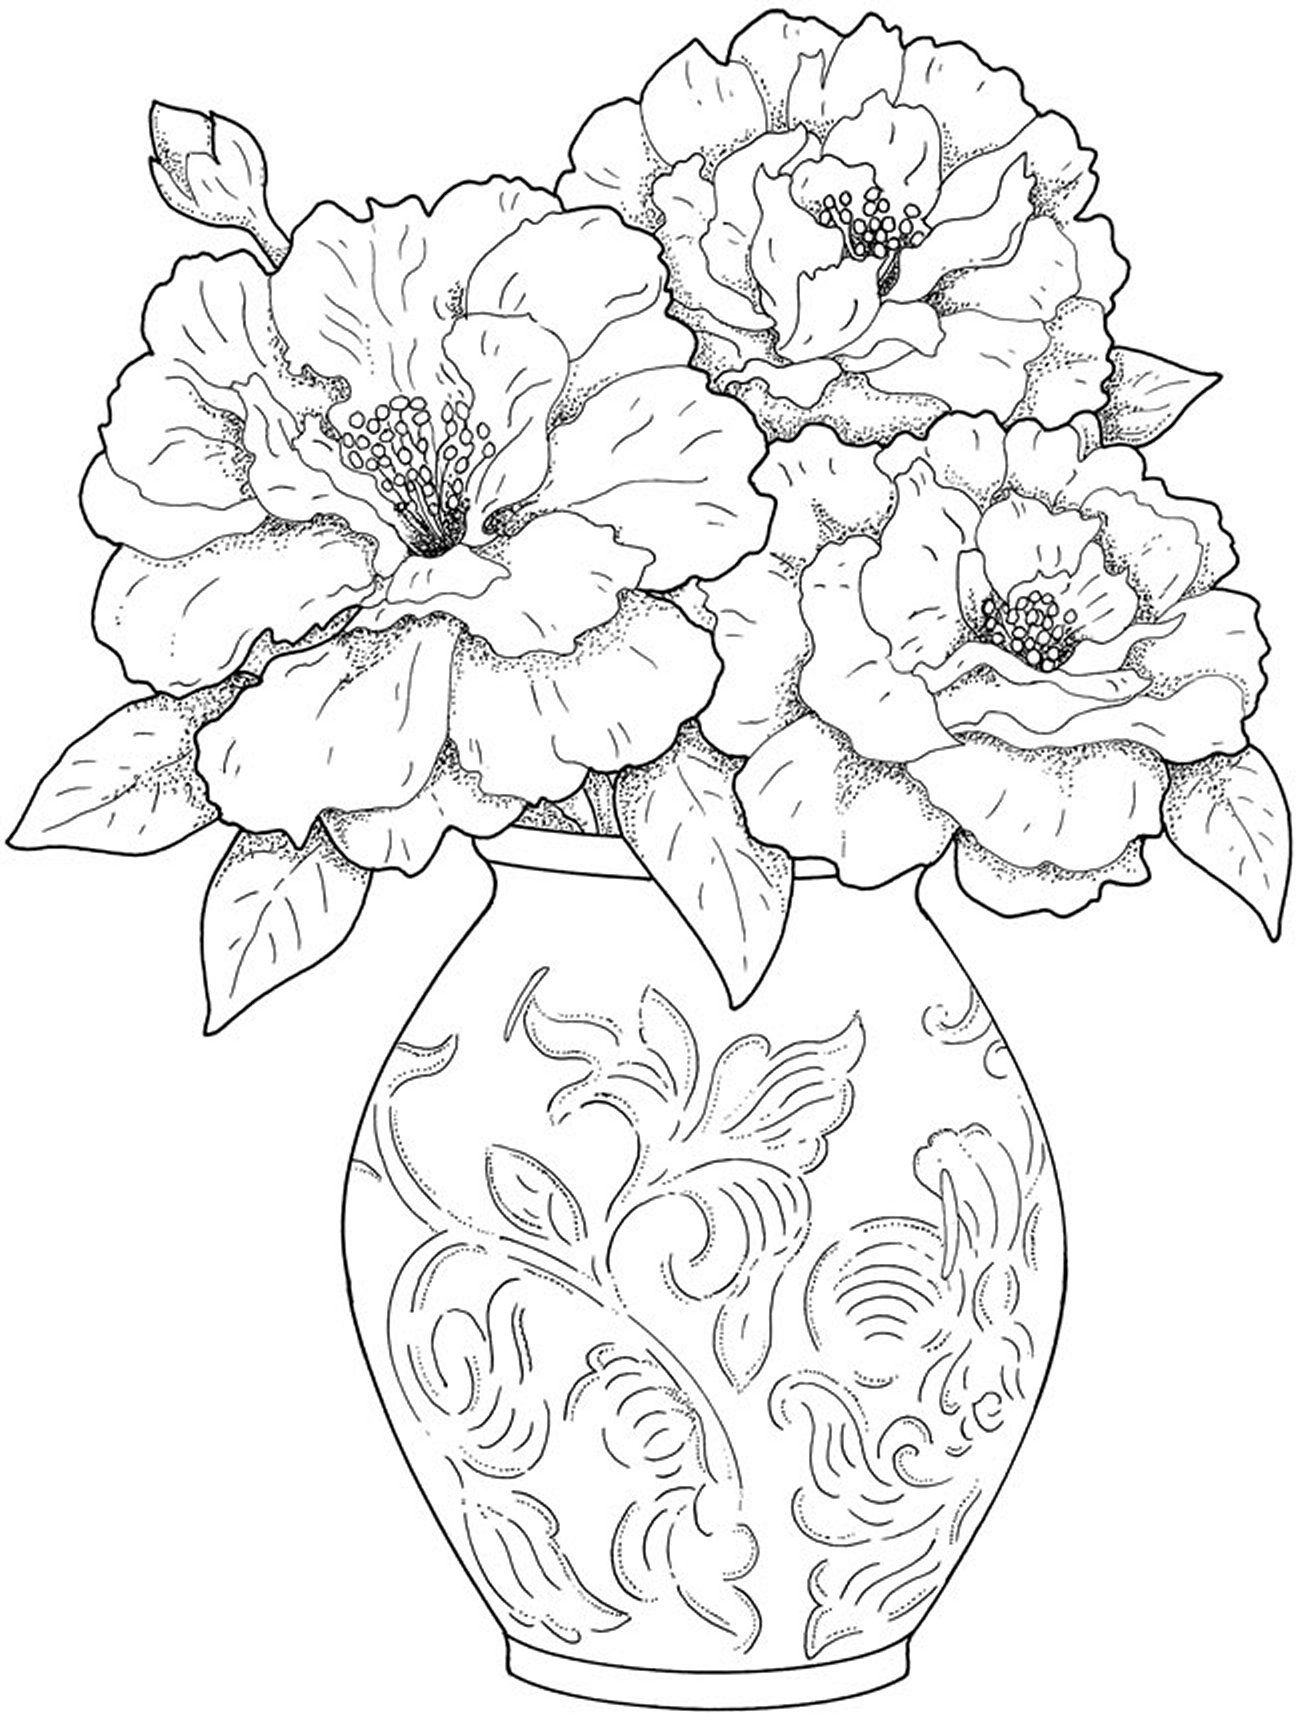 Pin by Charlotte English on COLORING PAGES | Pinterest | Adult ...